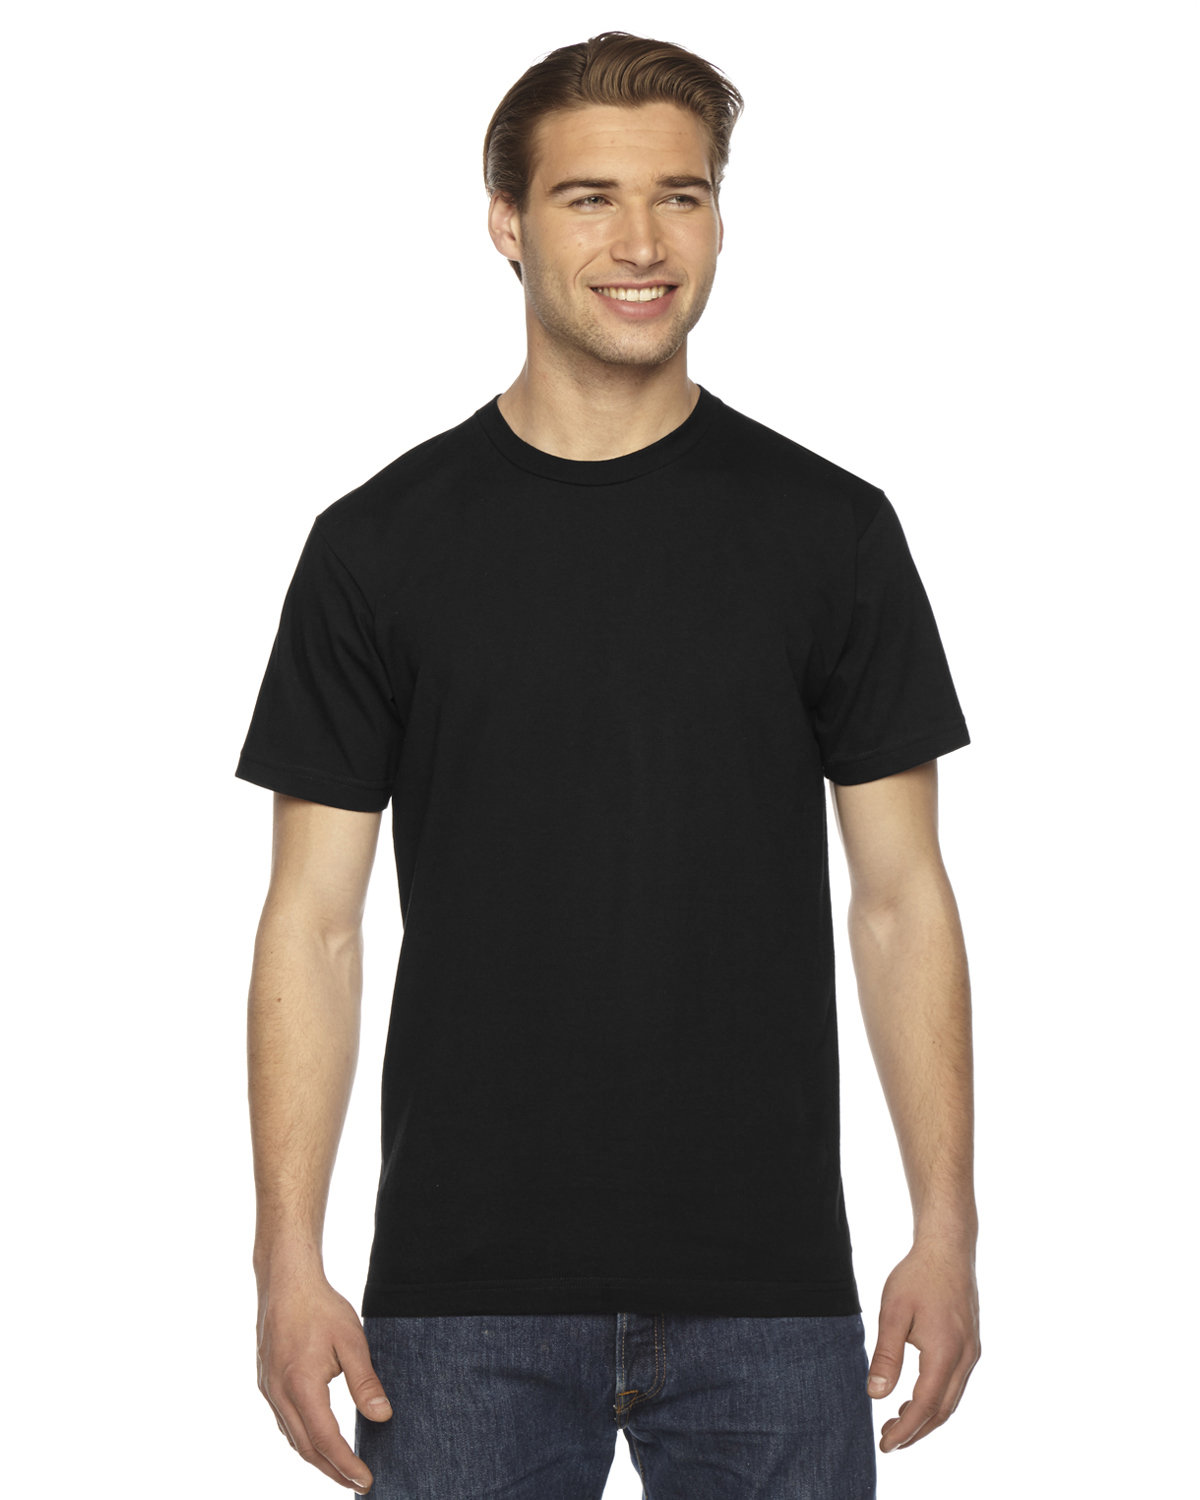 American Apparel Unisex Fine Jersey USA Made T-Shirt BLACK